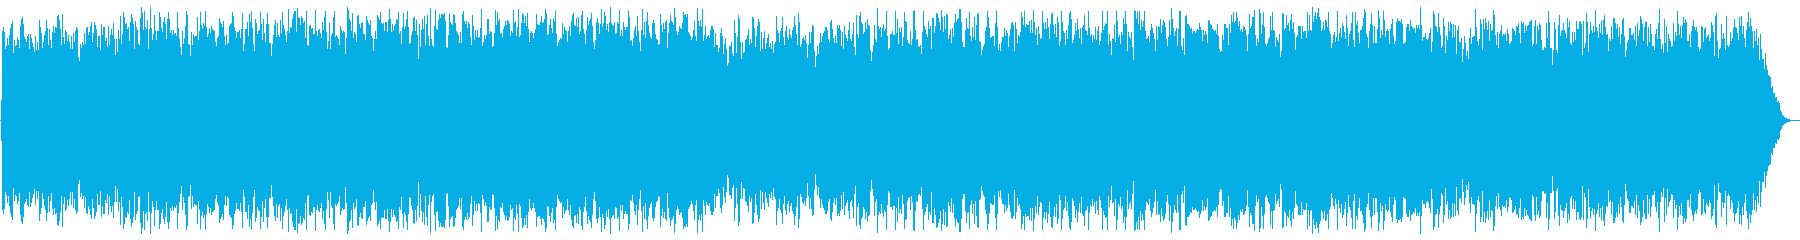 The Son of Love is a Hymn's reproduced waveform